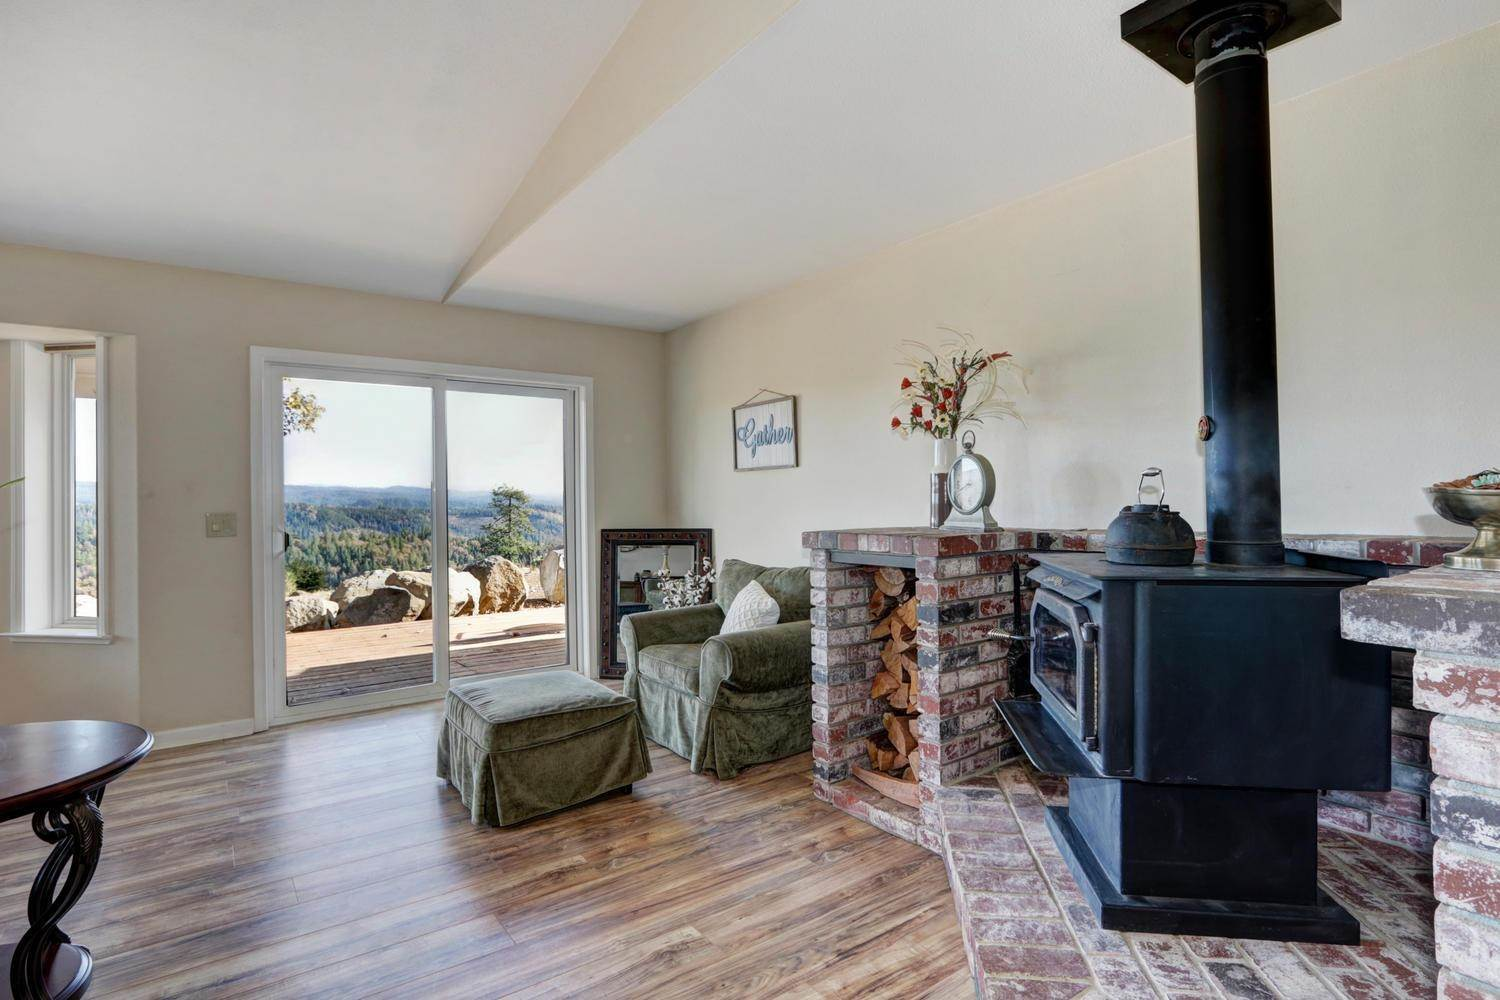 6440 Hidden Treasure, Foresthill, CA 95631